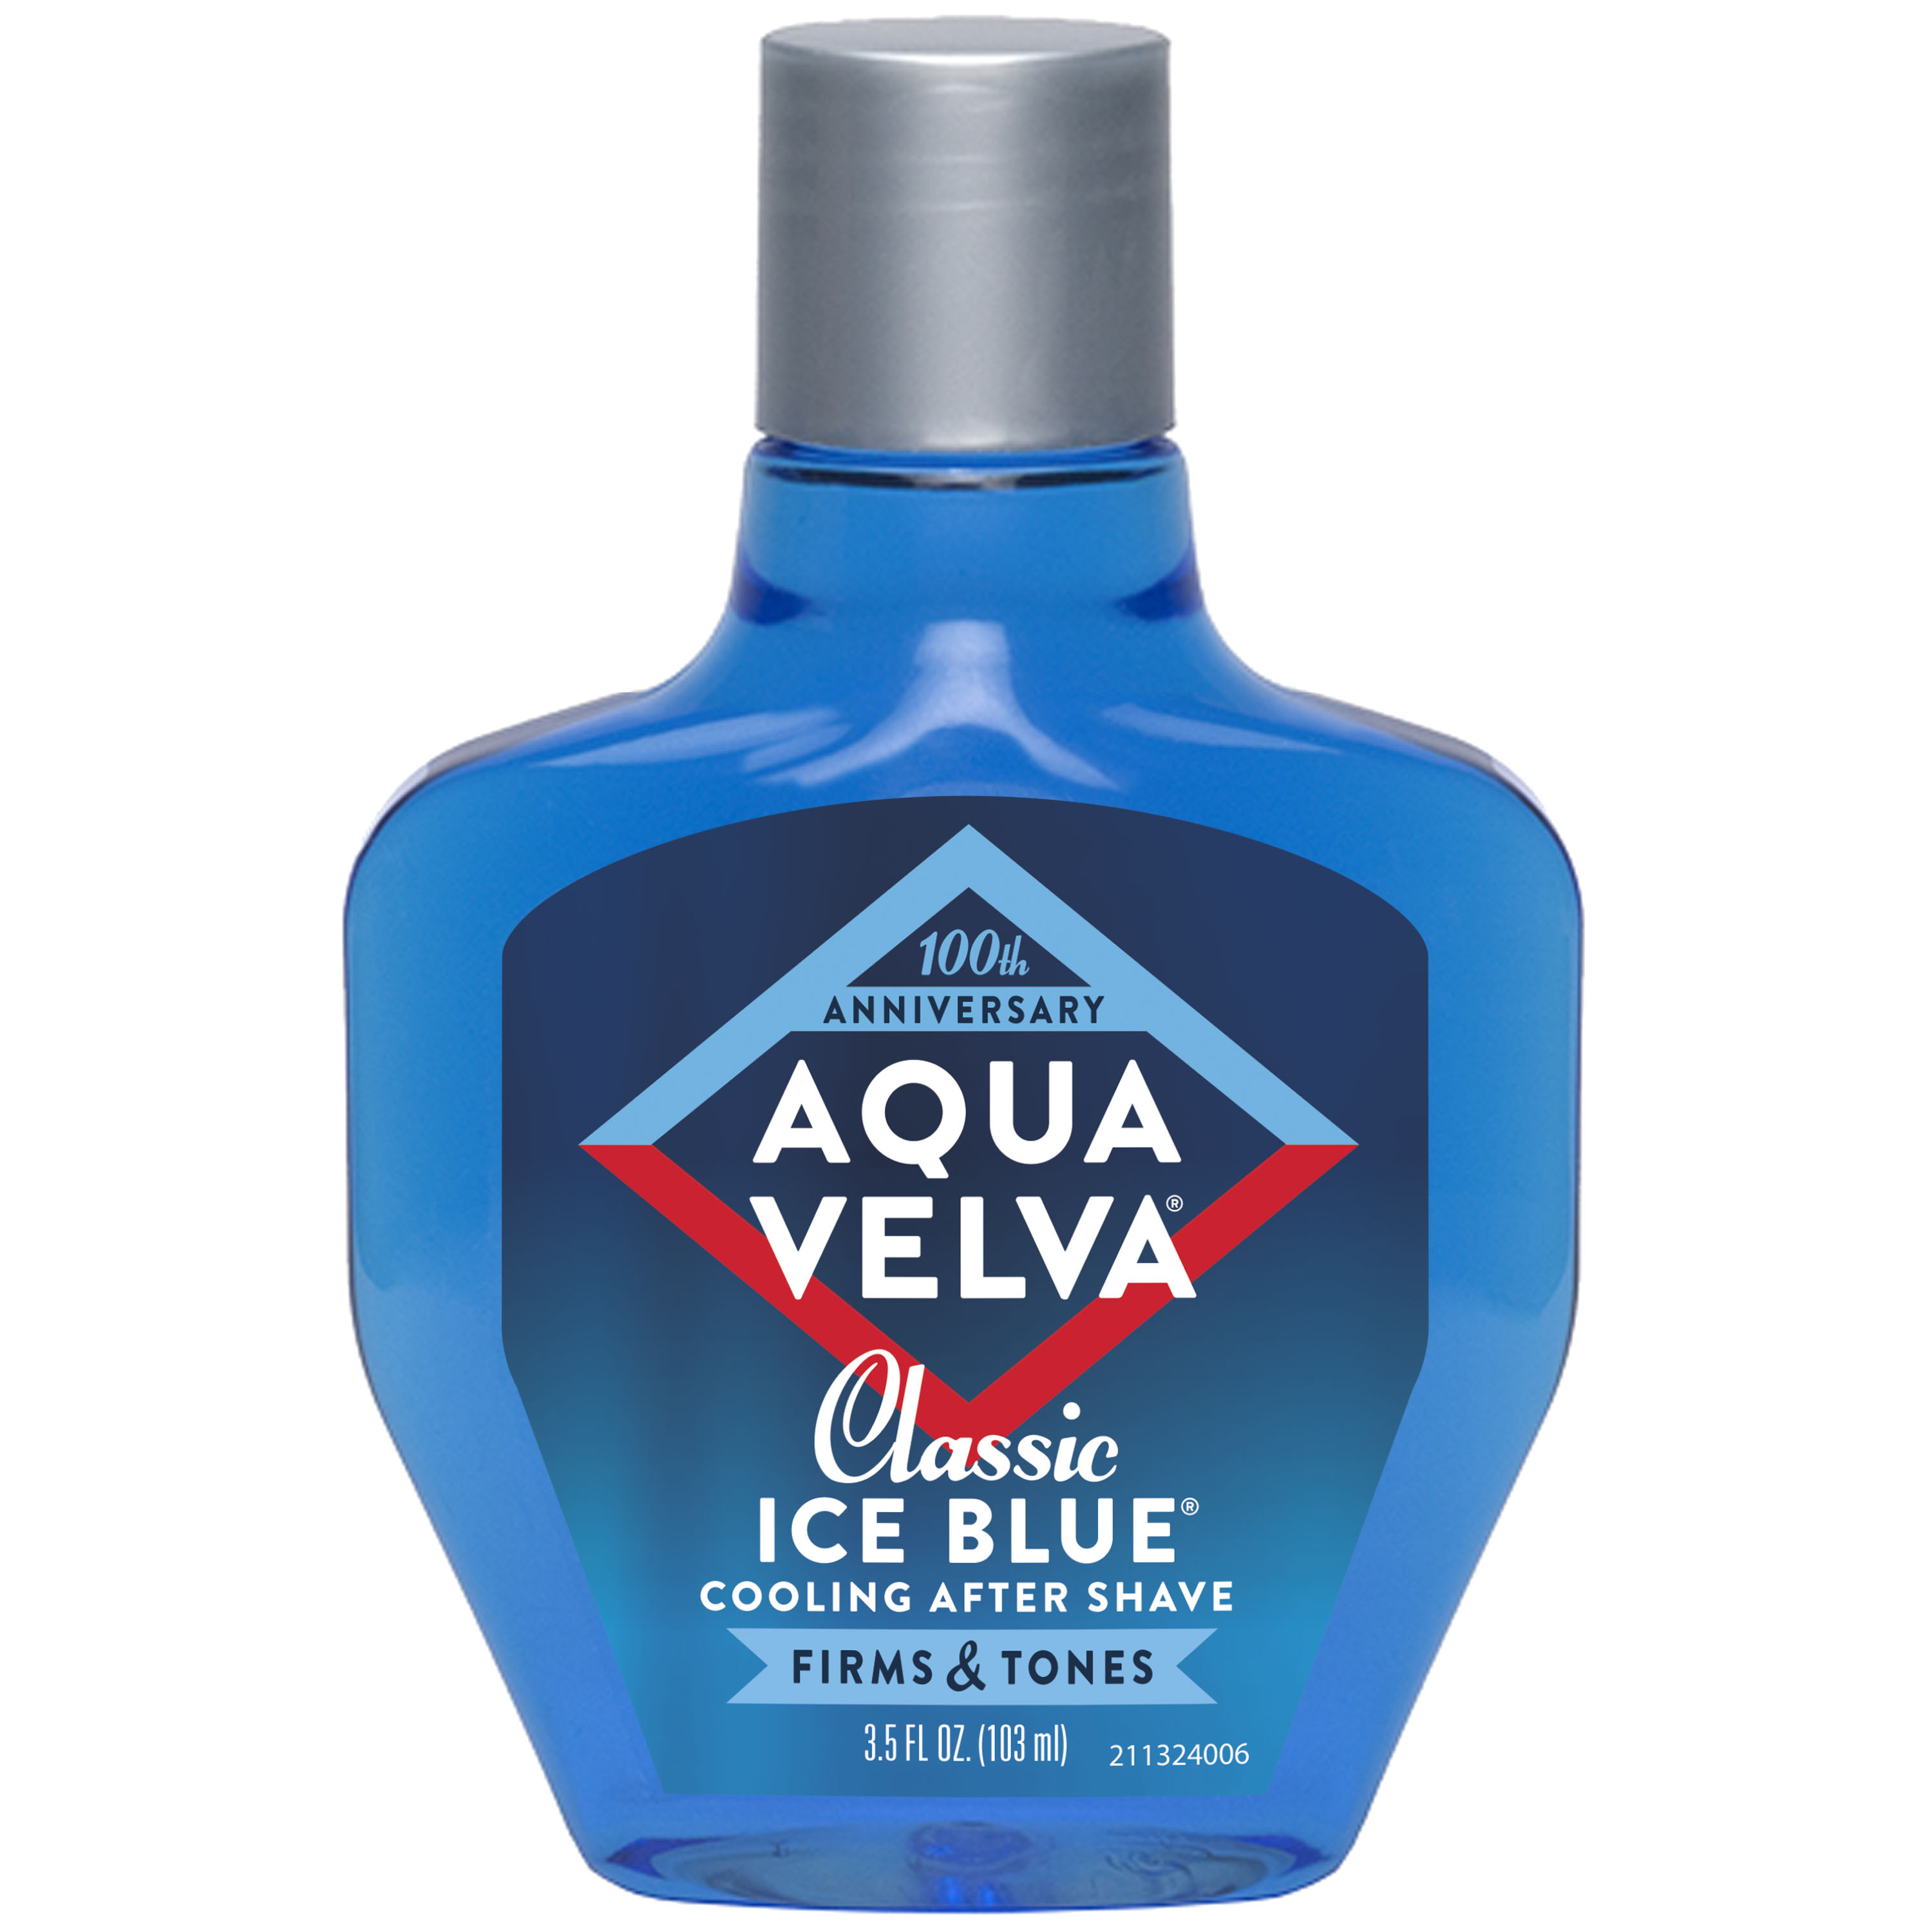 Aqua Velva After Shave, Classic Ice Blue Scent that Cools, Firms and Tones Skin, 3.5 Fluid Ounce Bottle